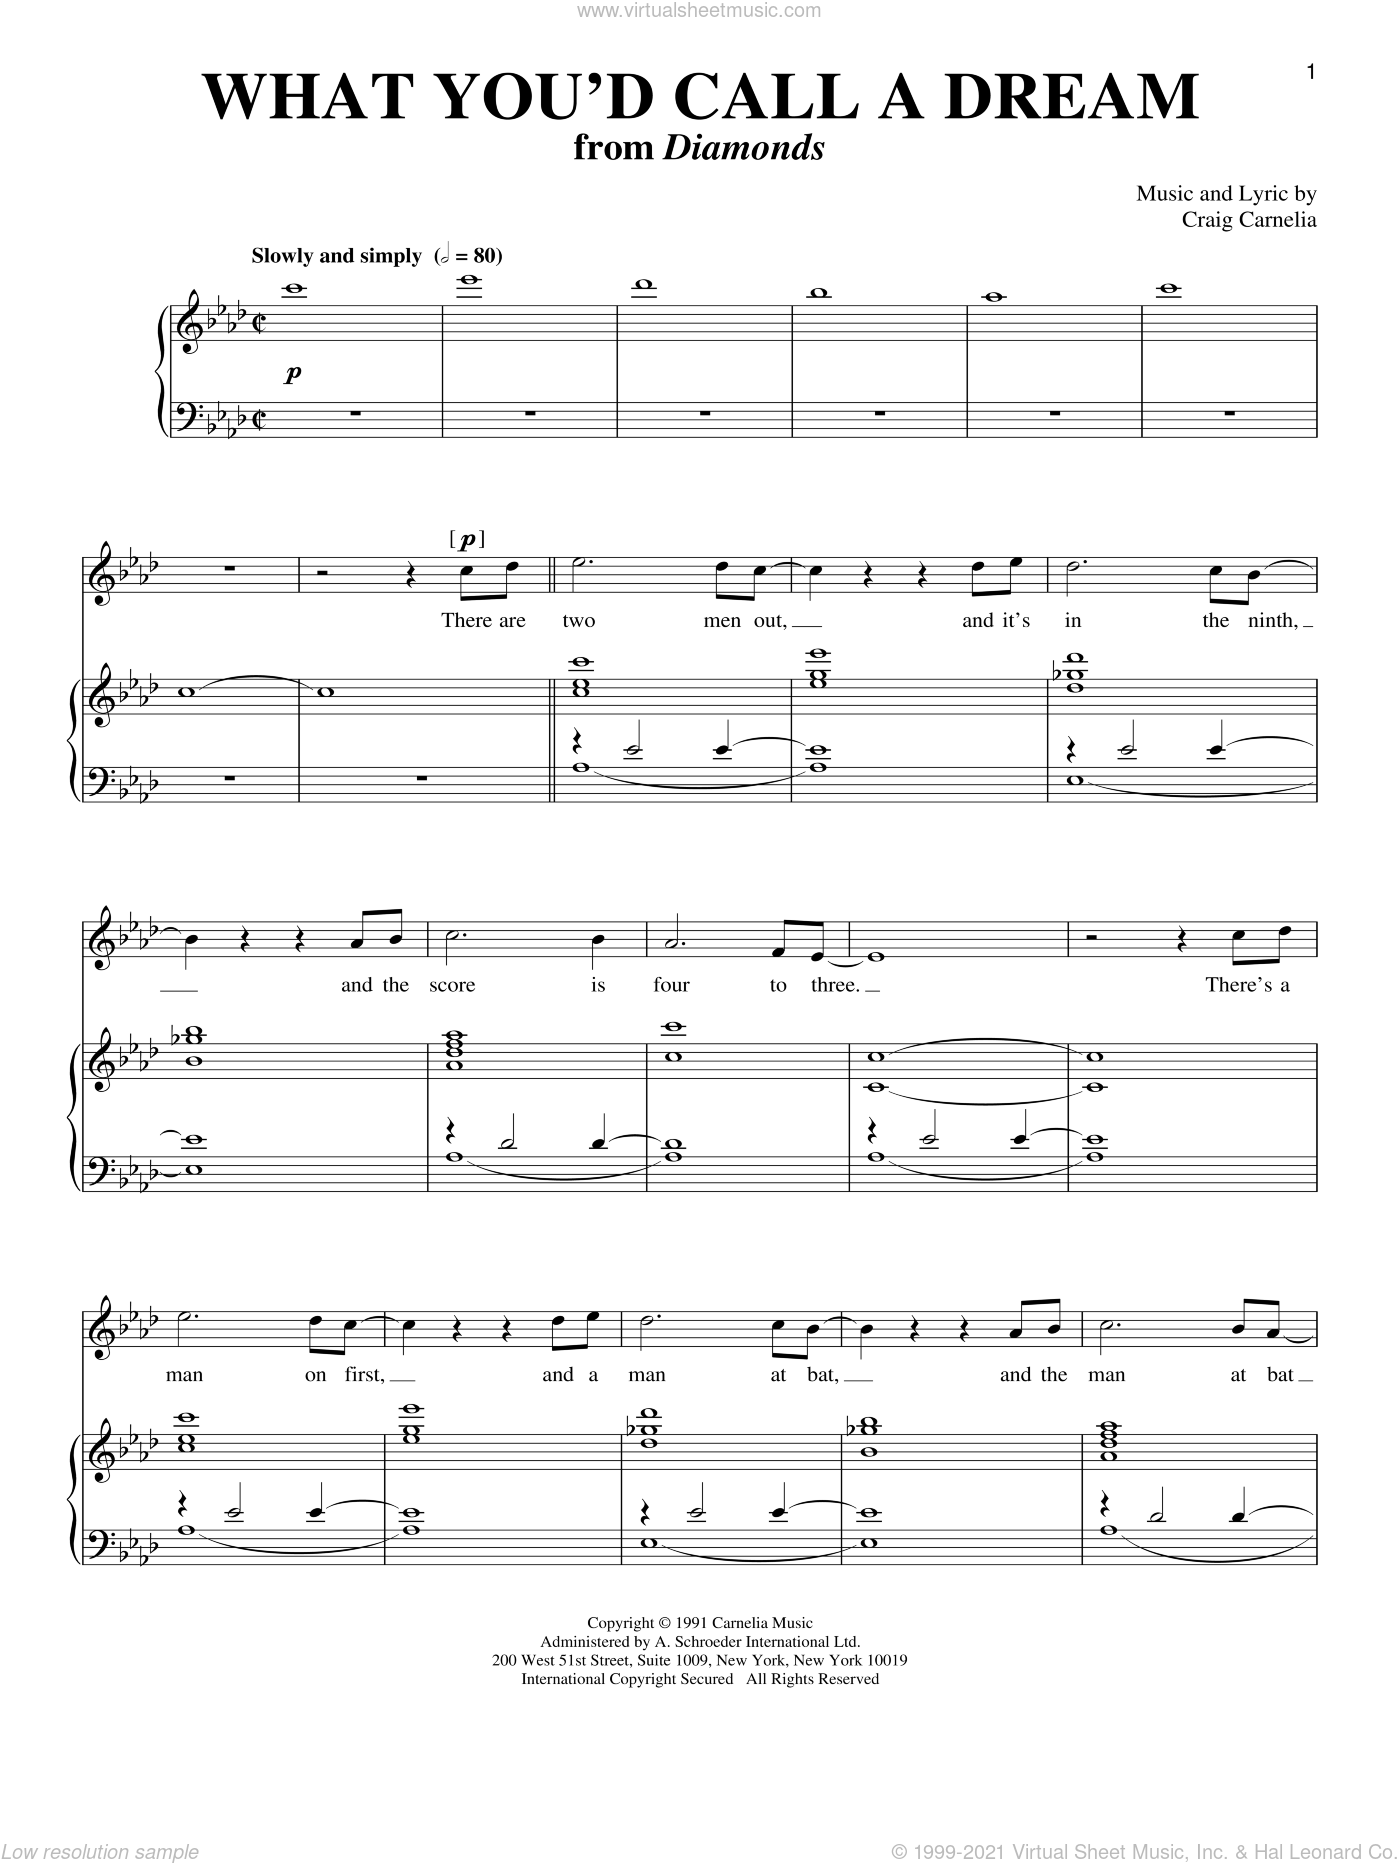 What You'd Call A Dream sheet music for voice and piano by Craig Carnelia. Score Image Preview.